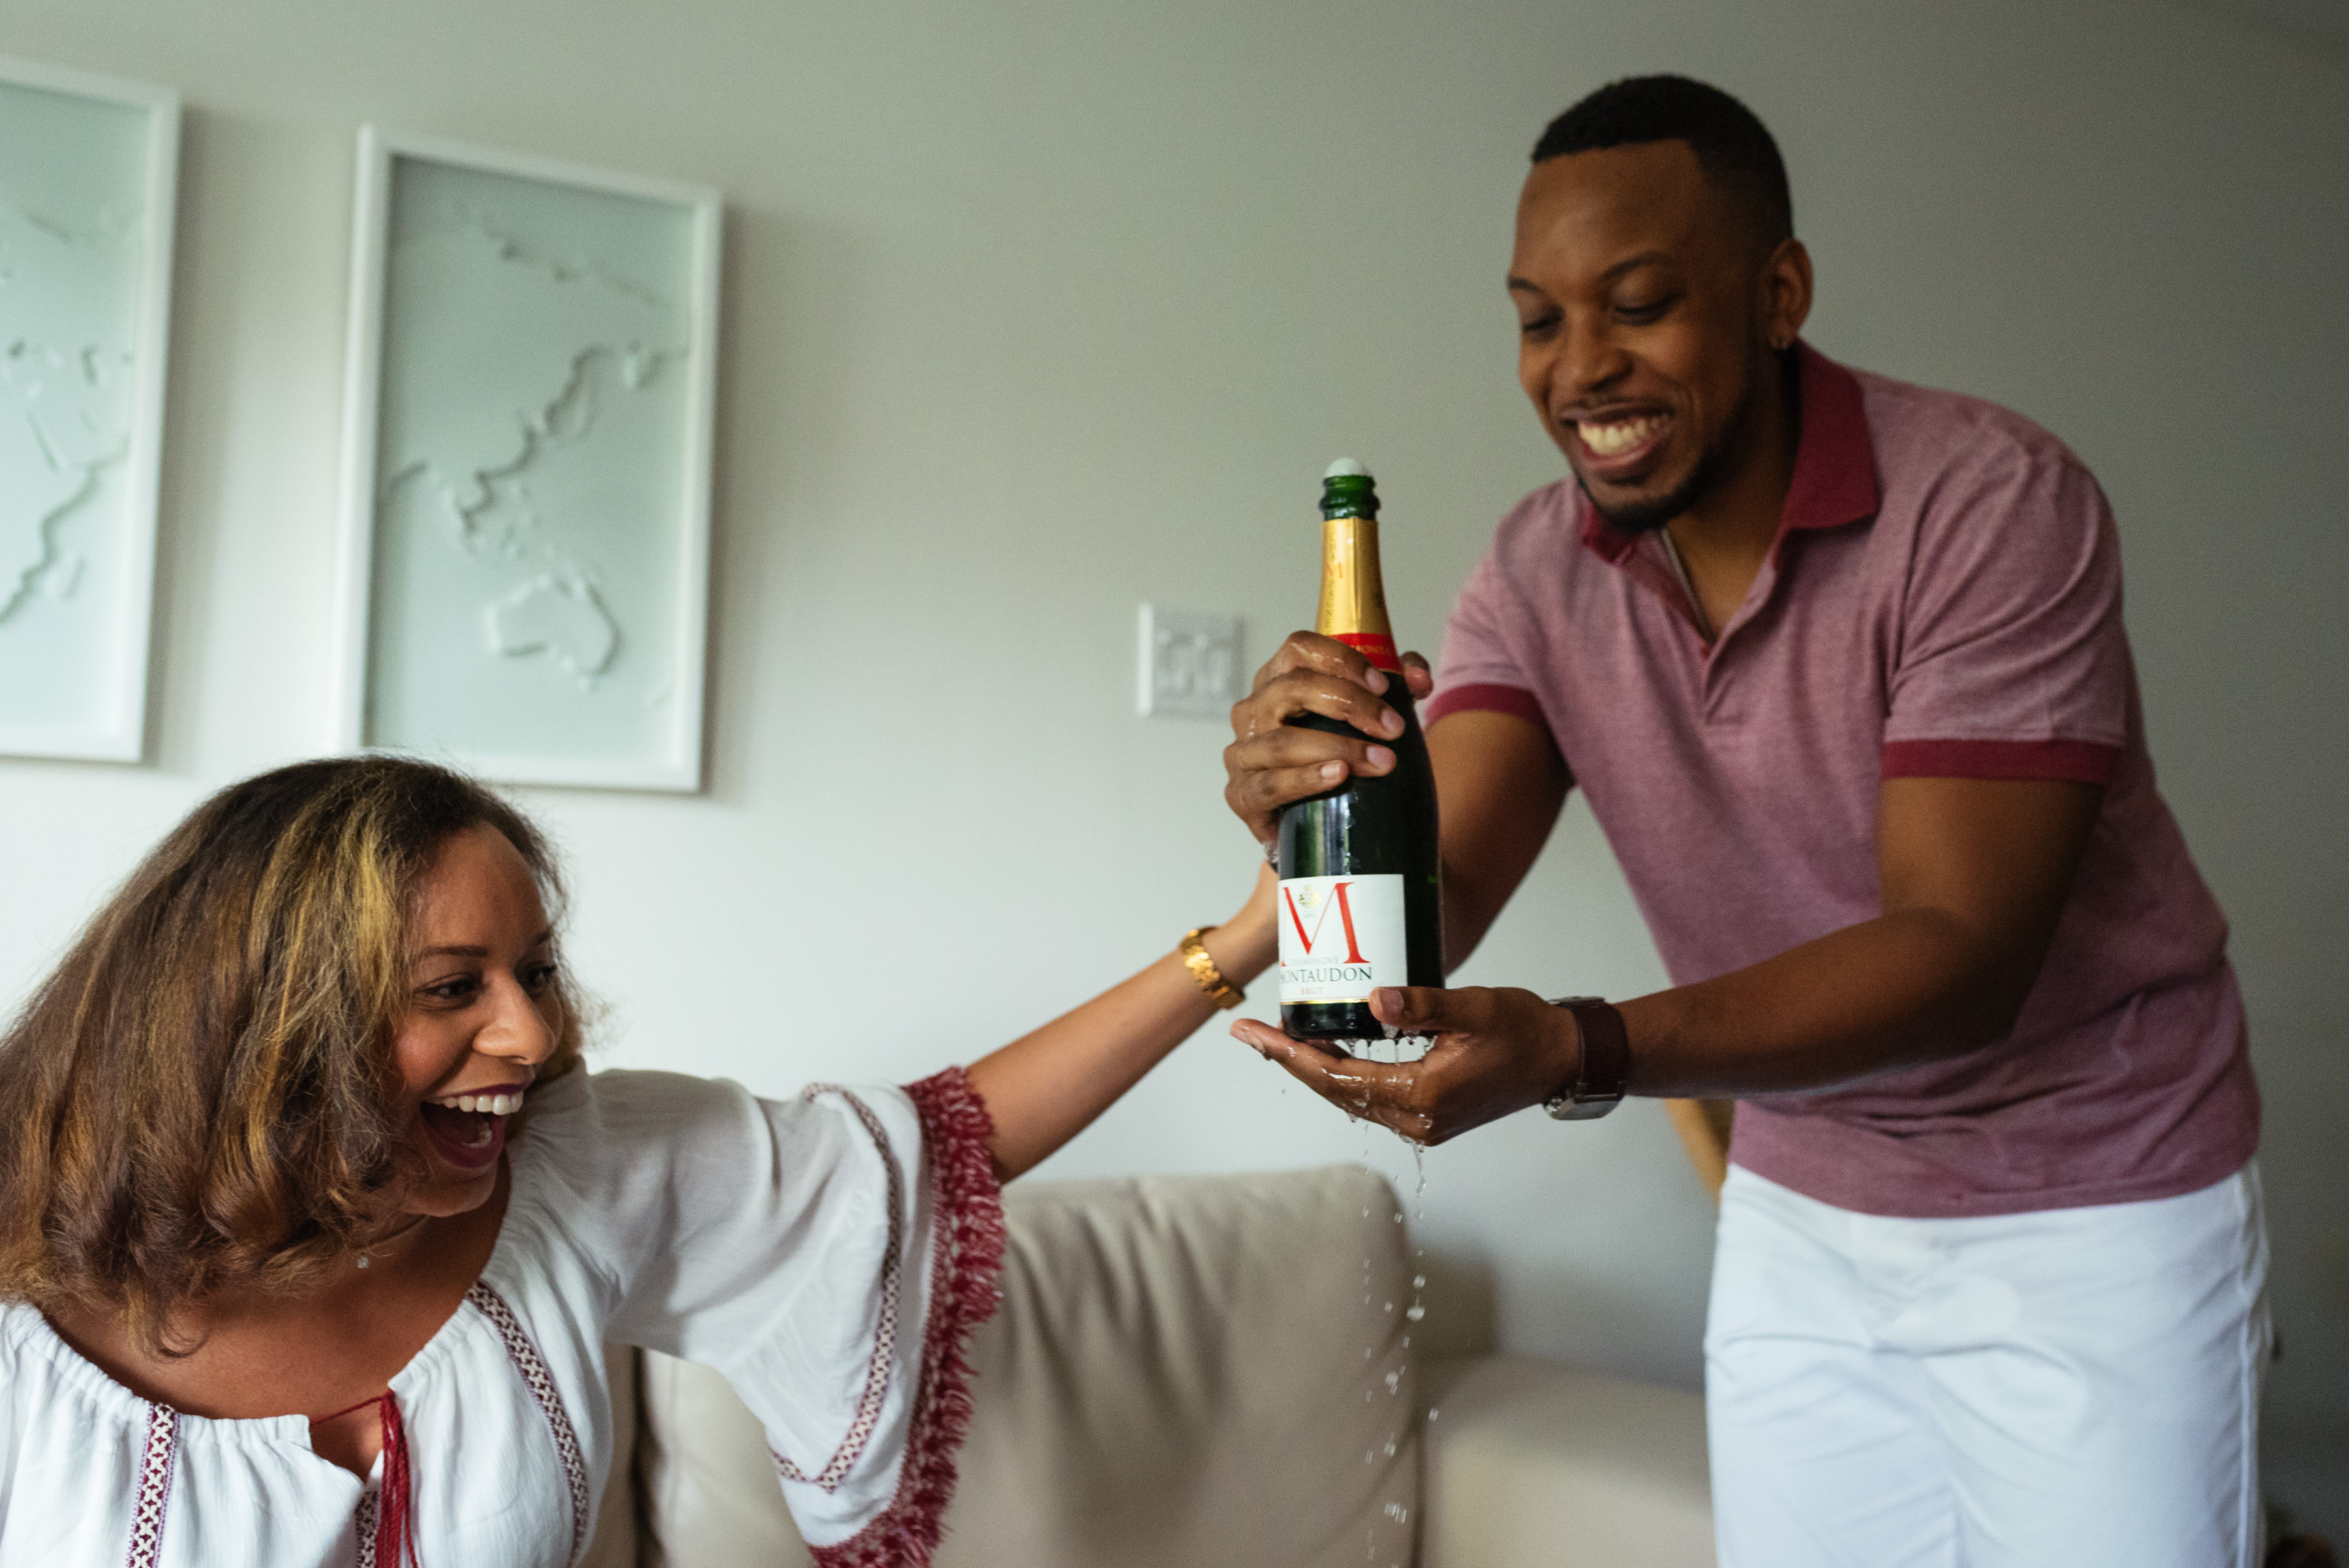 Popped champagne dripping during engagement photos